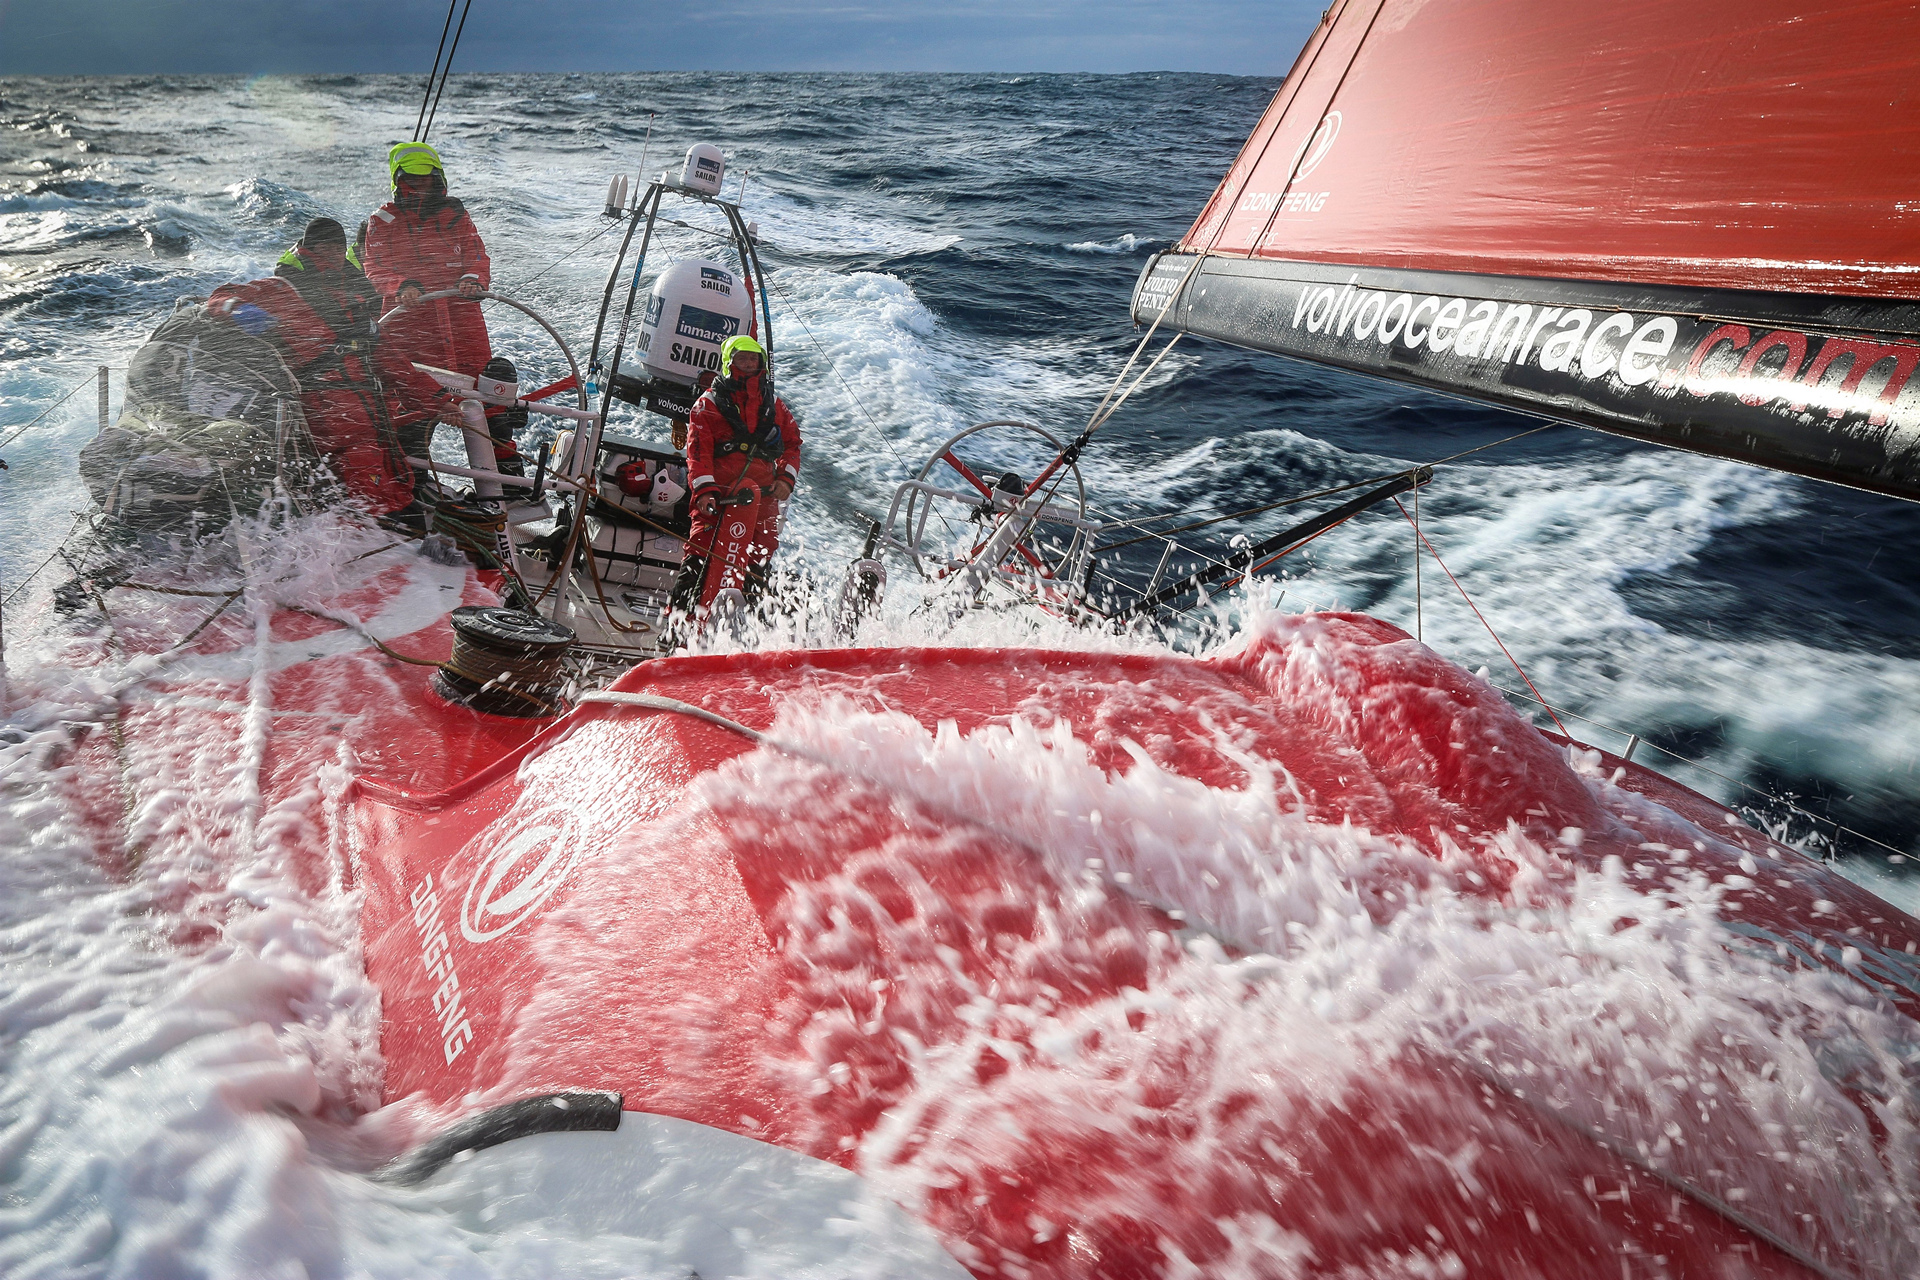 Tough new route for 2017-2018 Volvo Ocean Race announced © Zhejiang Geely Holding Group Co., Ltd